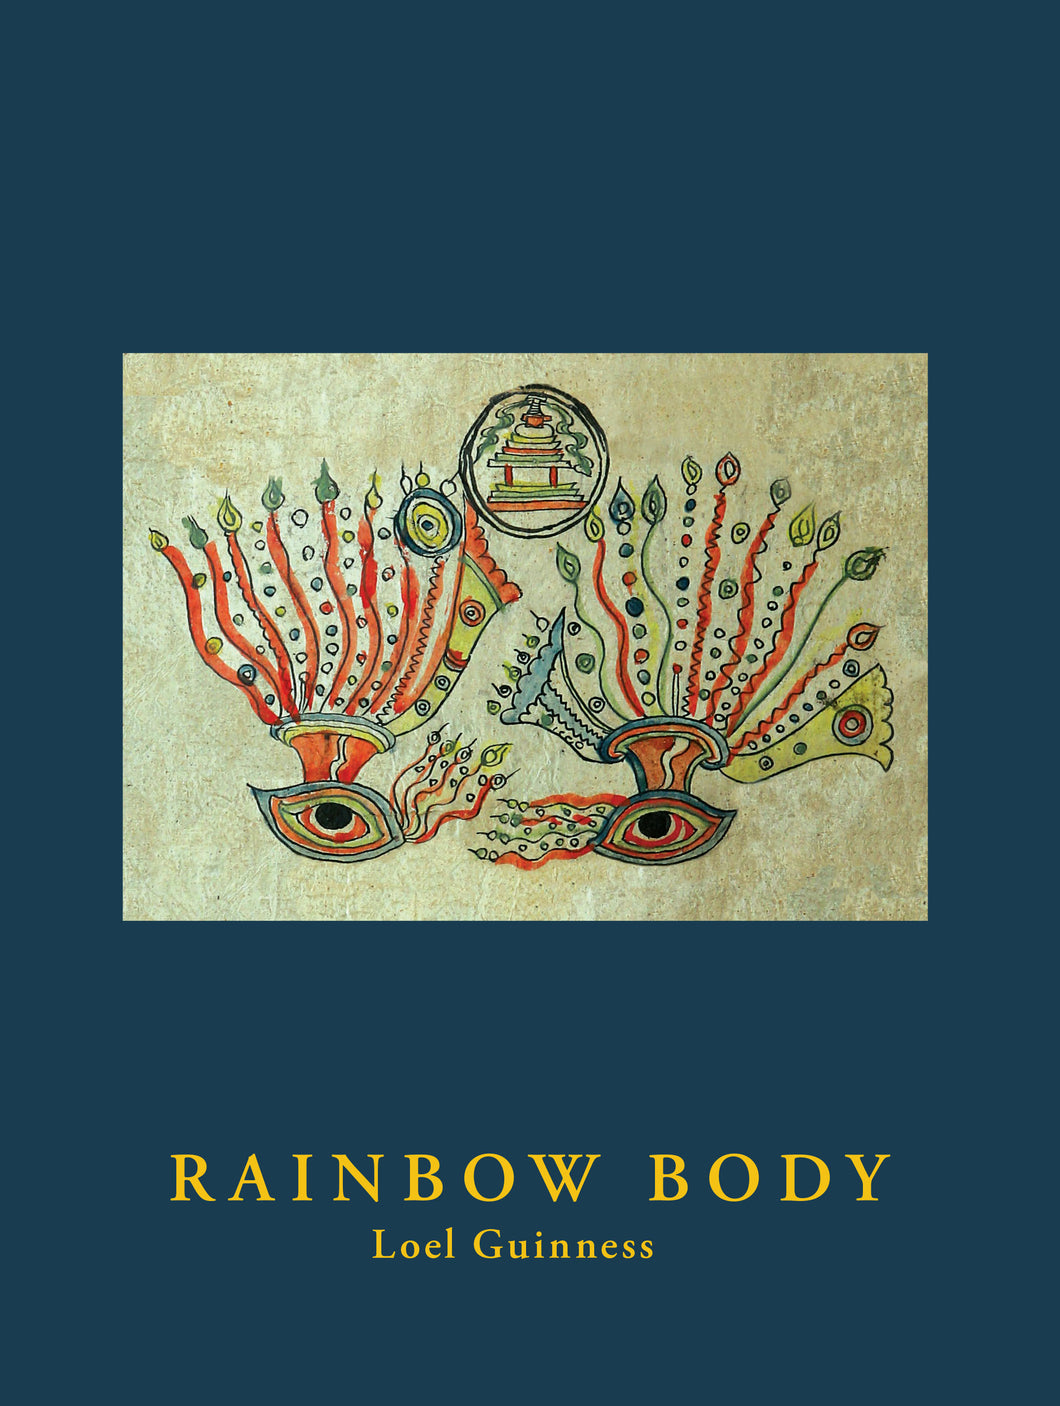 RAINBOW BODY by Loel Guinness (2021 Edition)